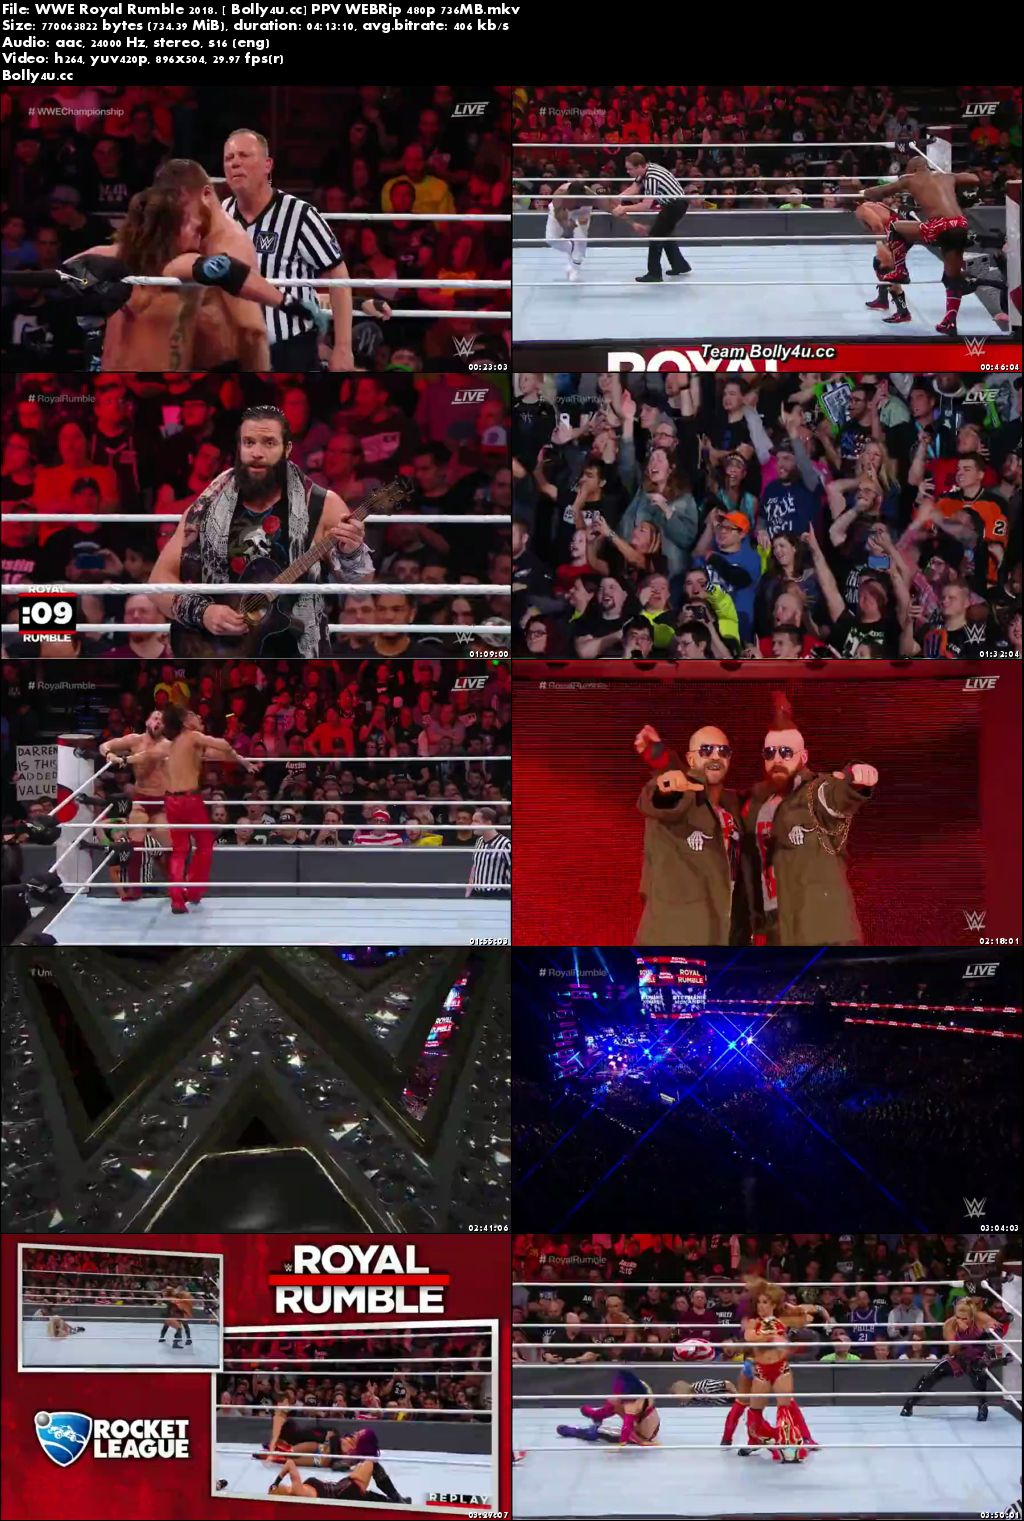 WWE Royal Rumble 2018 PPV WEBRip 700MB 480p x264 Download